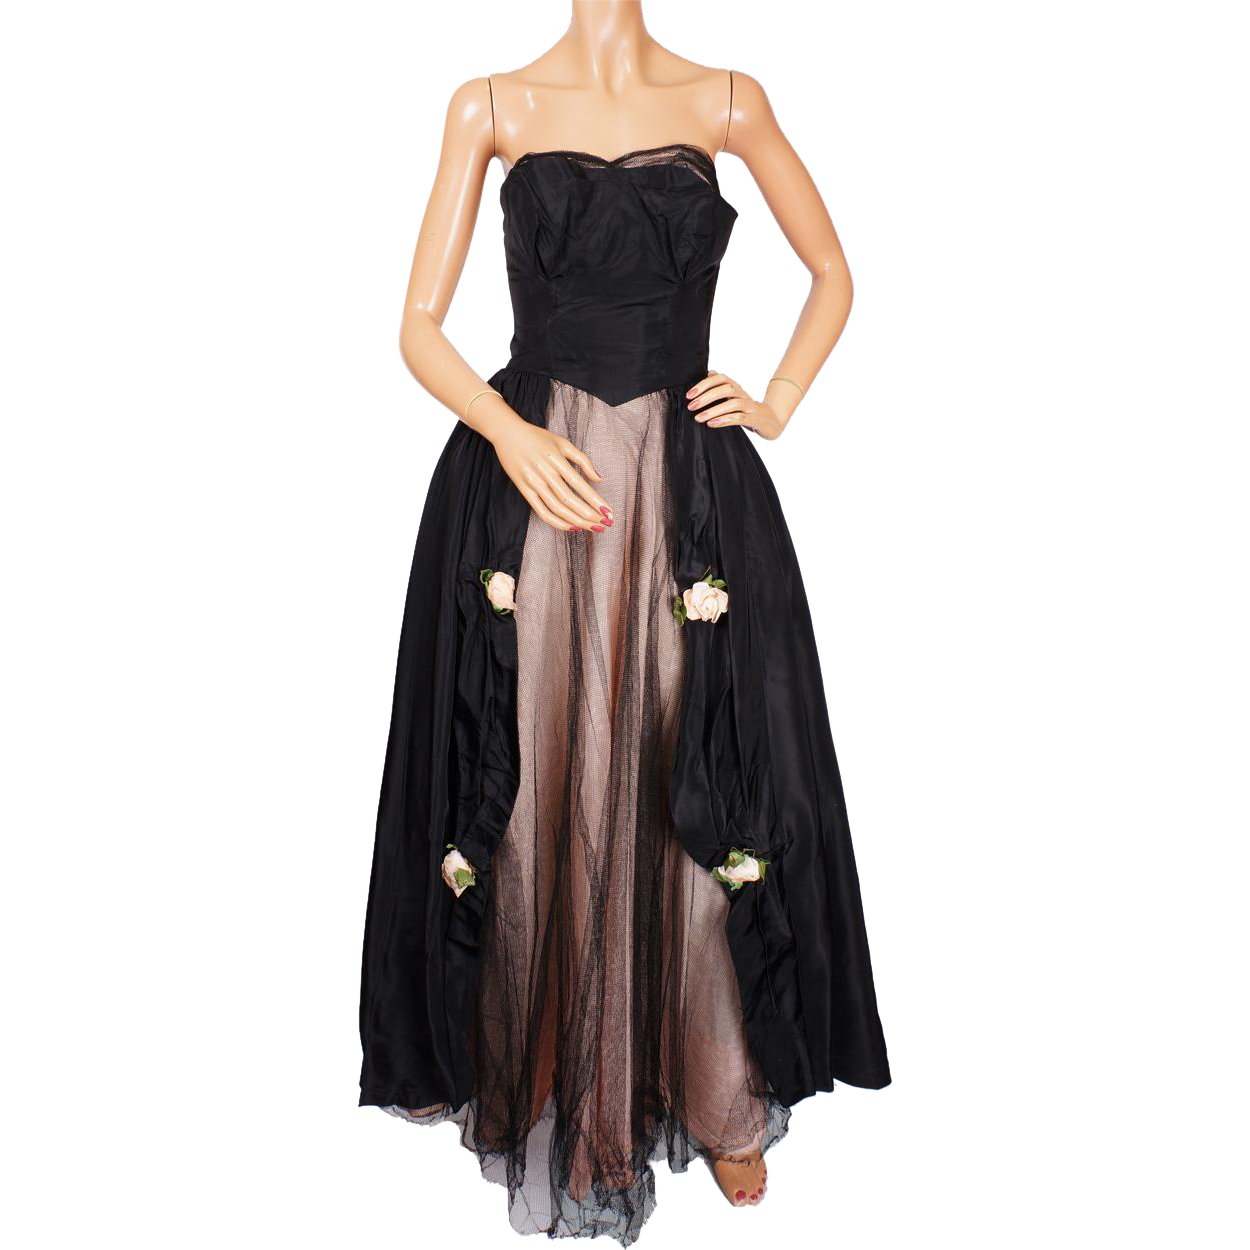 Vintage 1950s Black Tulle Gown By Harry Keiser